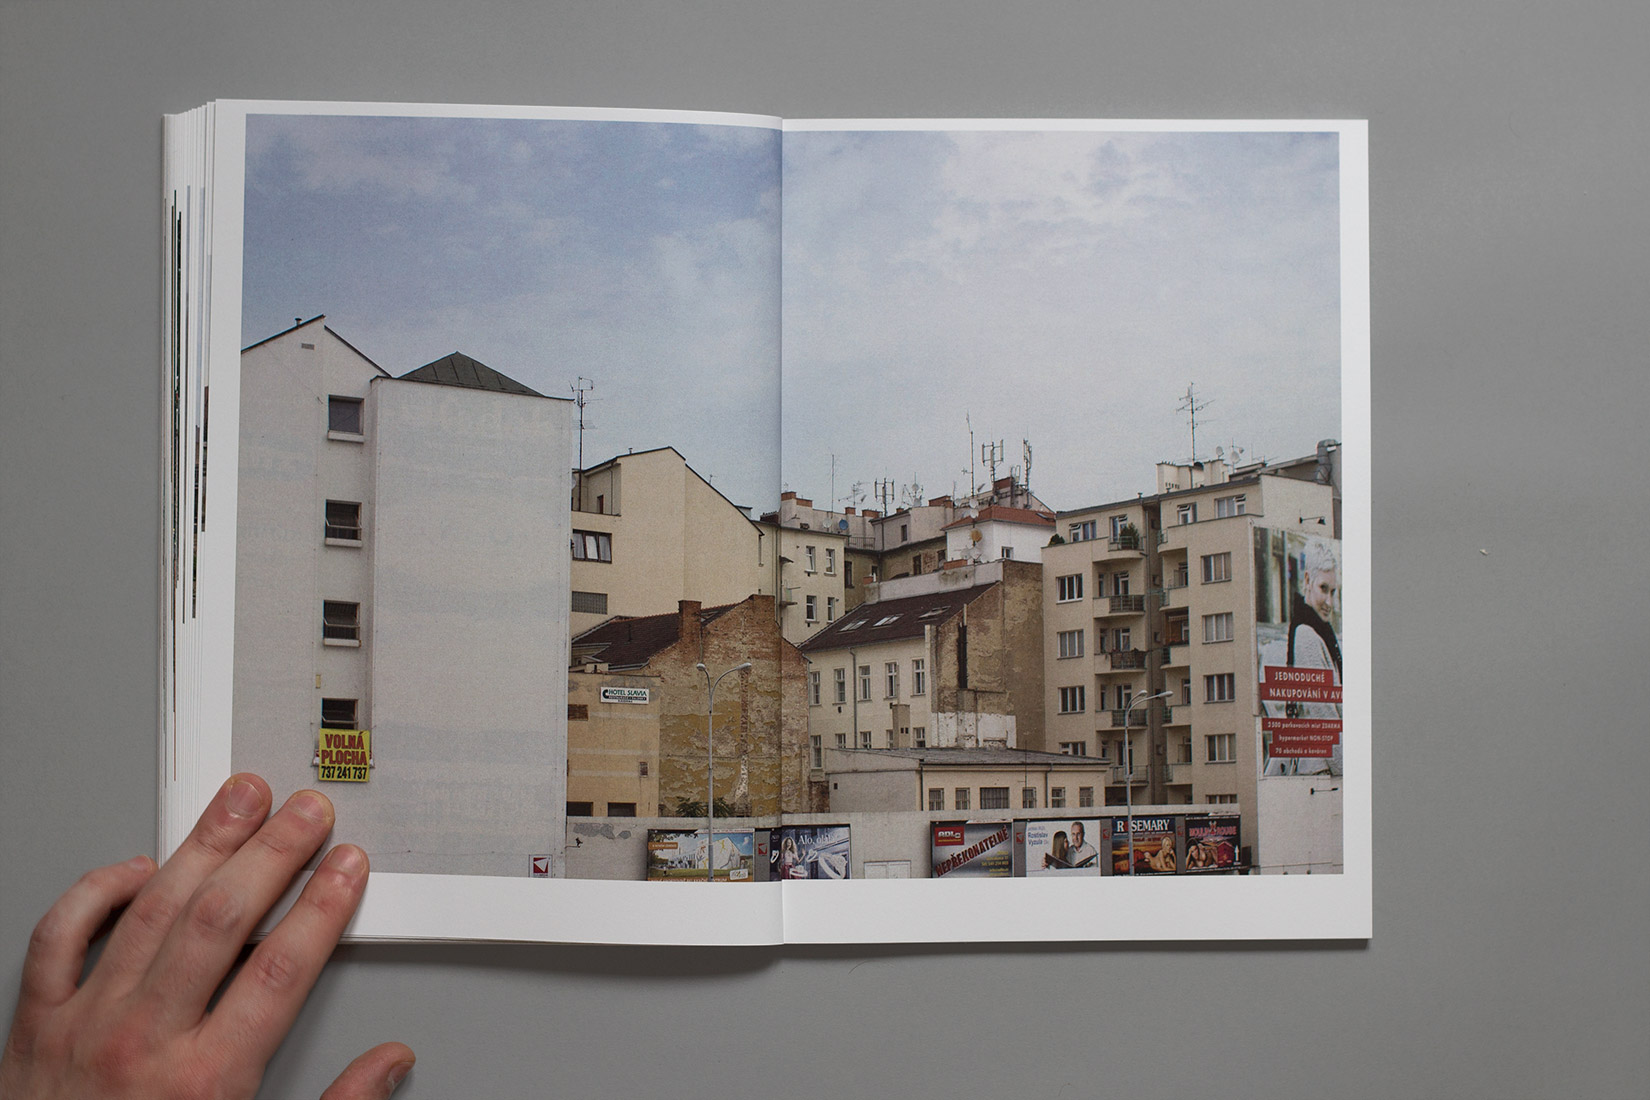 Study trip, book, Brno, photography, architecture, homes, ads